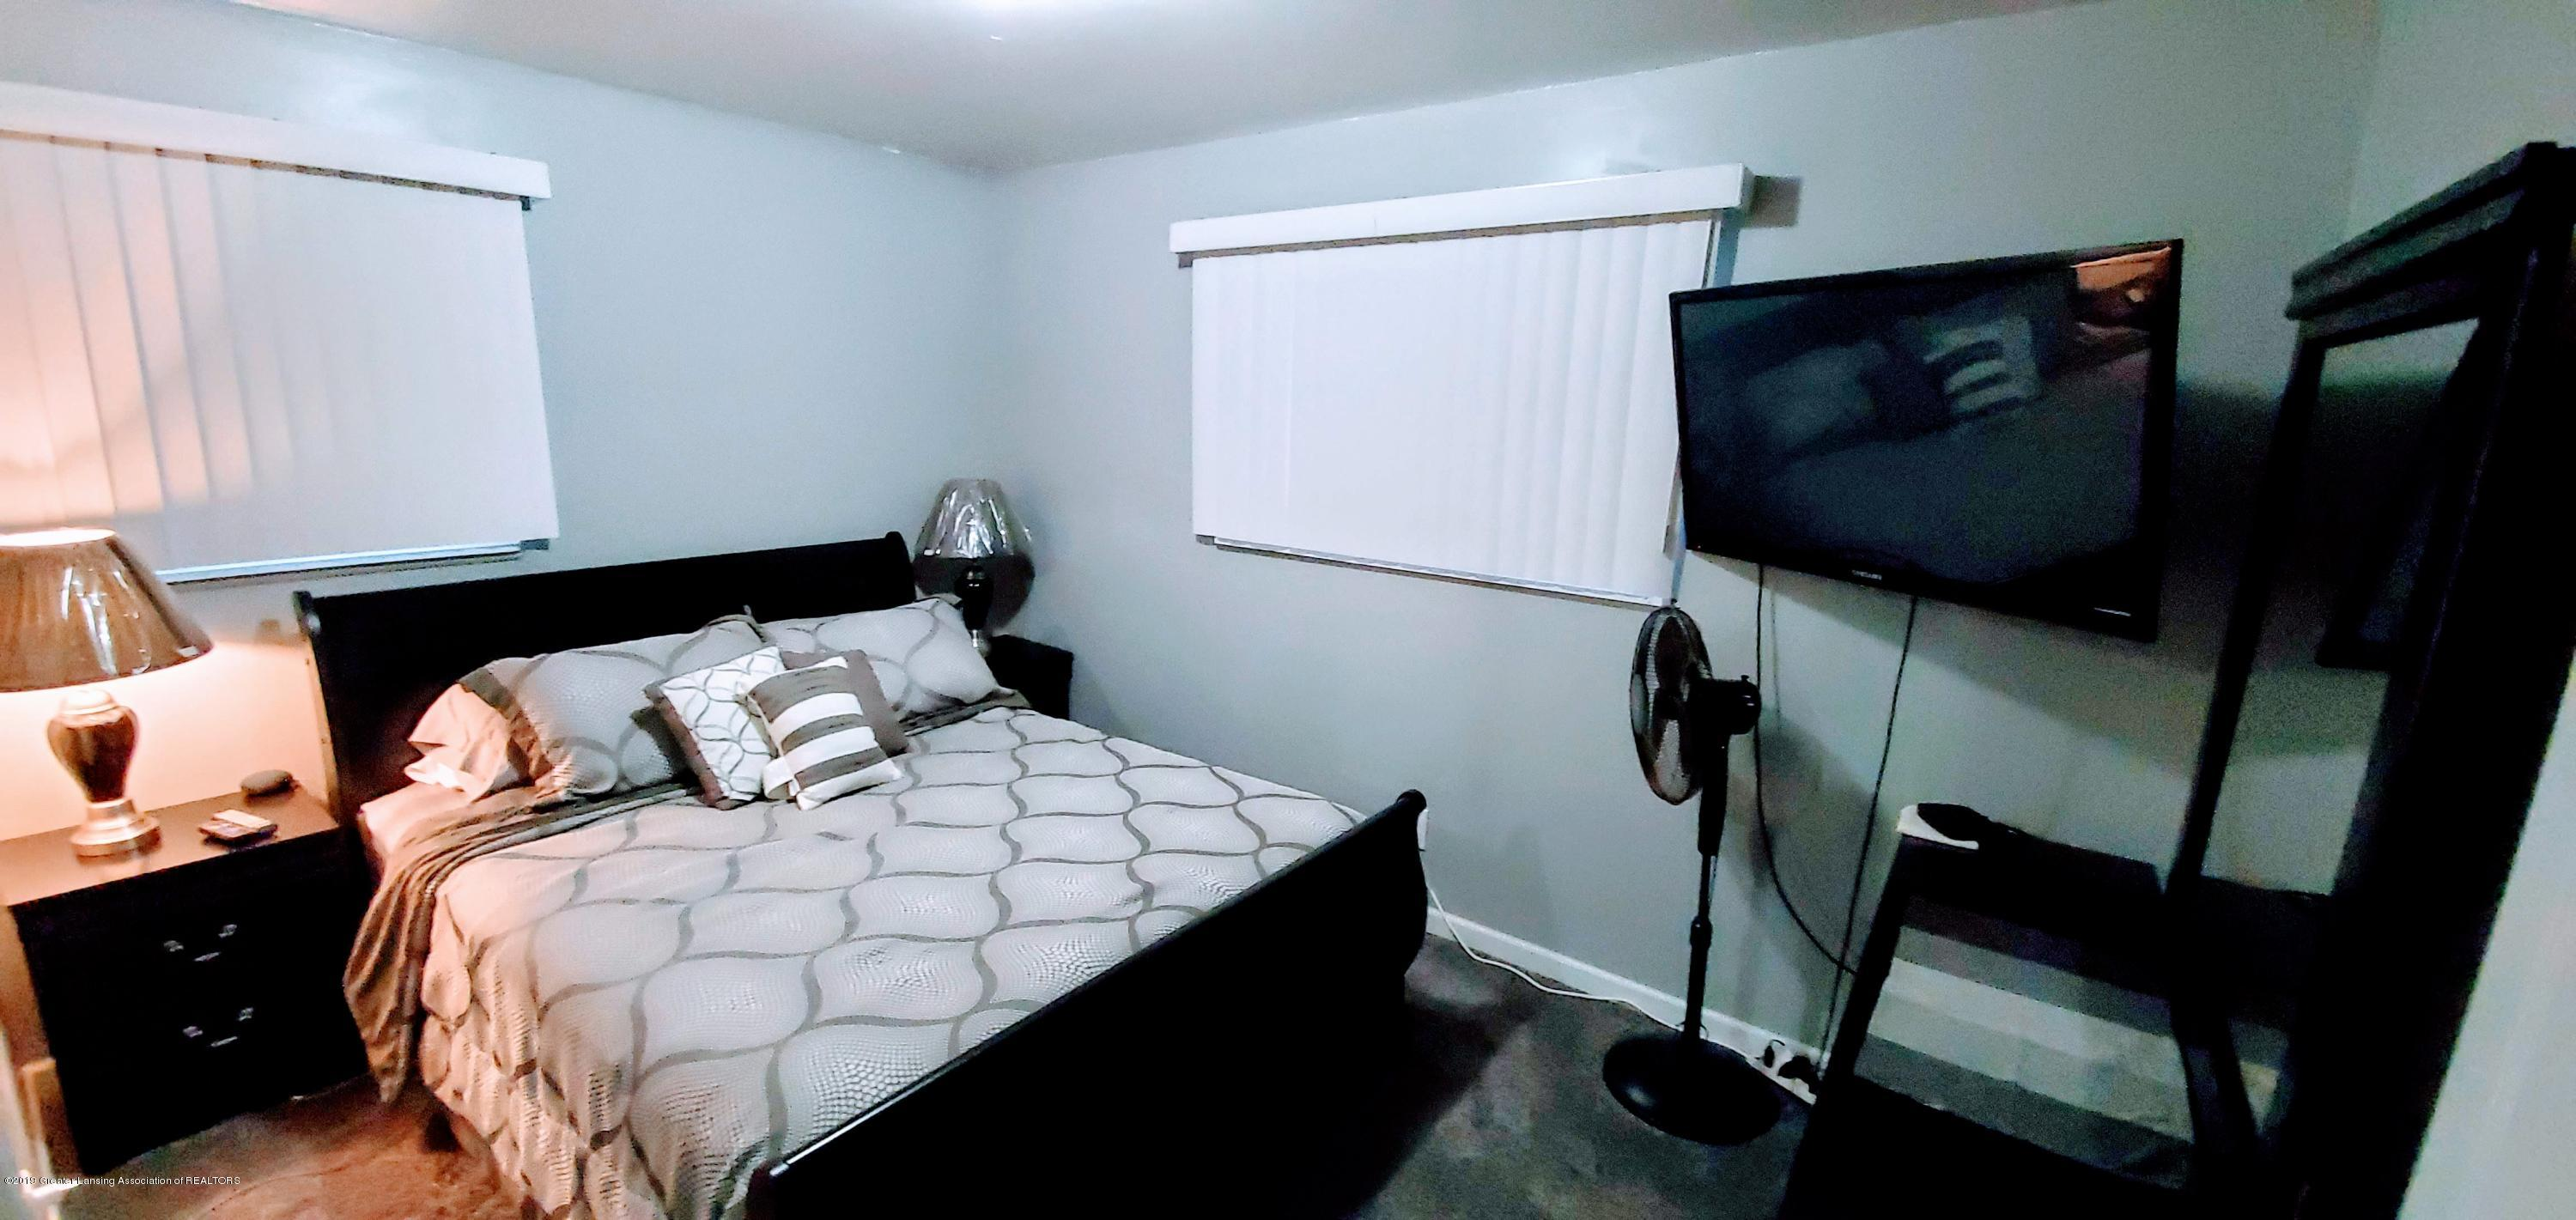 3924 Wedgewood Dr - Bed Room 2 - 9